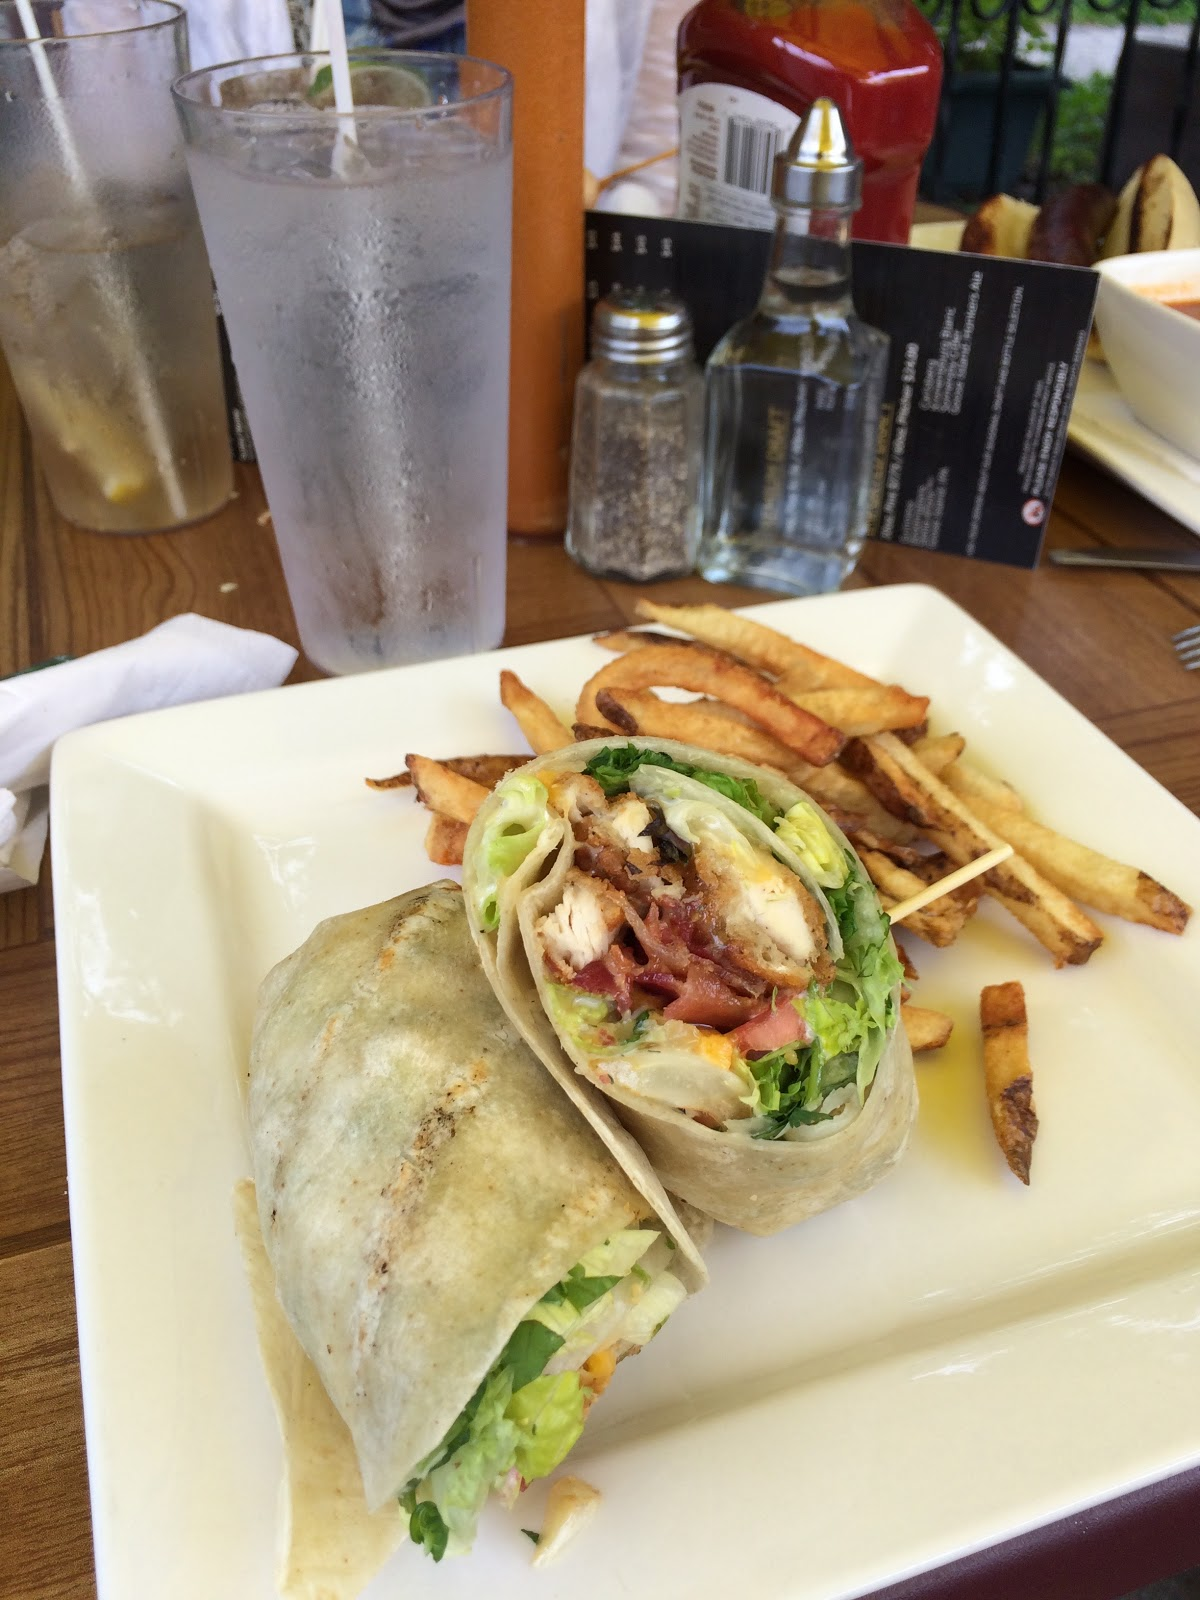 Crispy chicken wrap at the Barley Mow pub in Almonte, Ontario